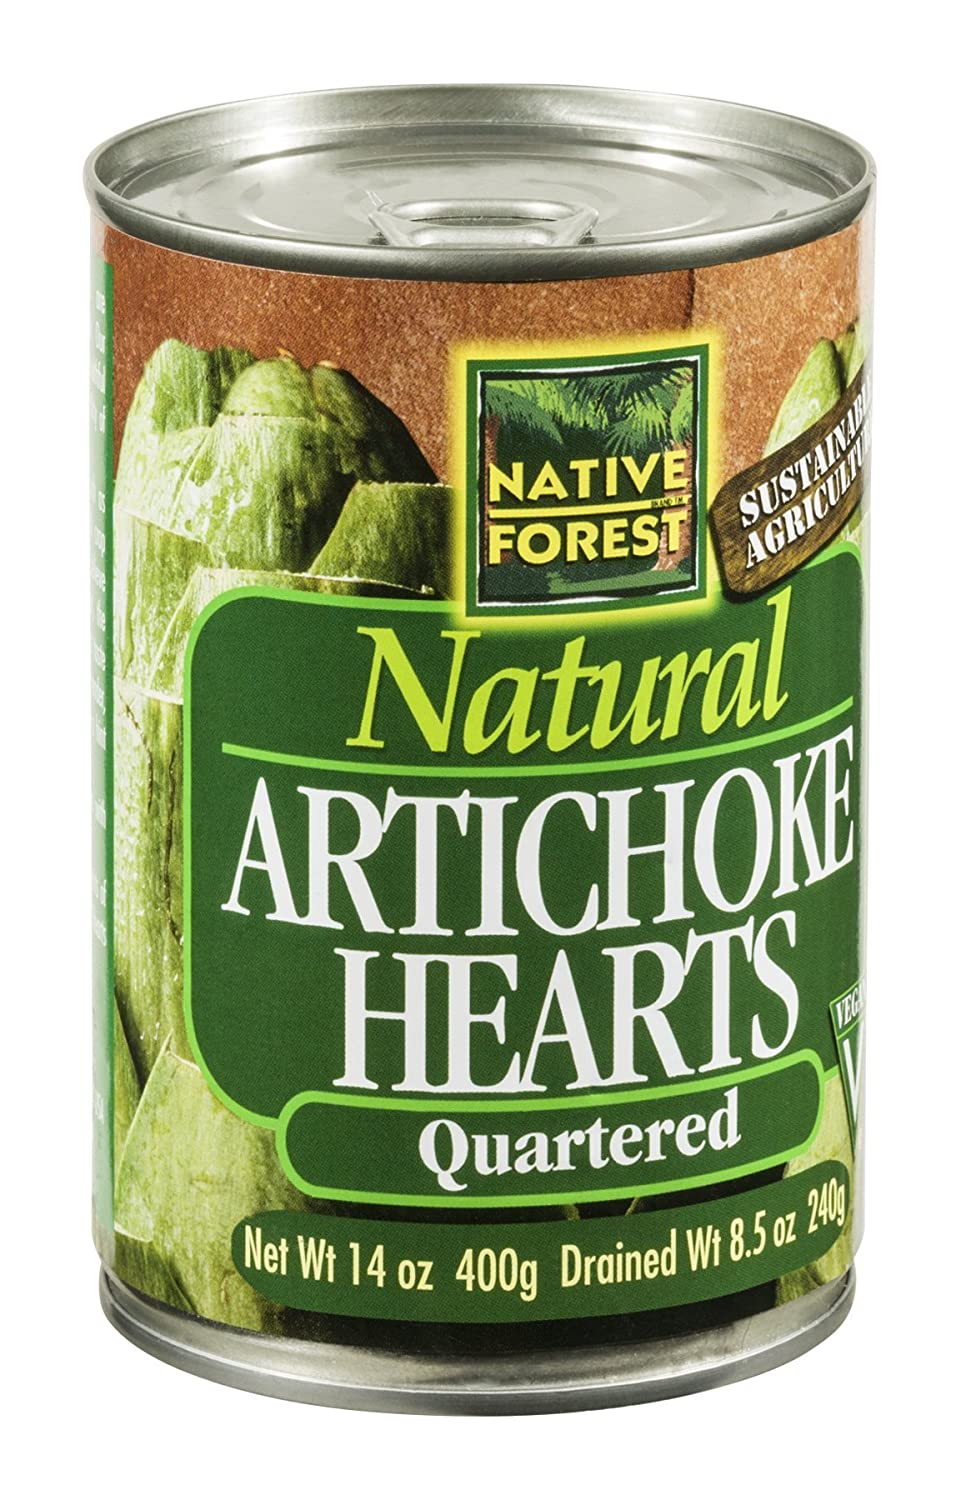 Native Forest Artichoke Hearts, Quartered, 14-Ounce Cans (Pack of 6) ( Value Bulk Multi-pack) chun guang coconut candy 5 6 ounce